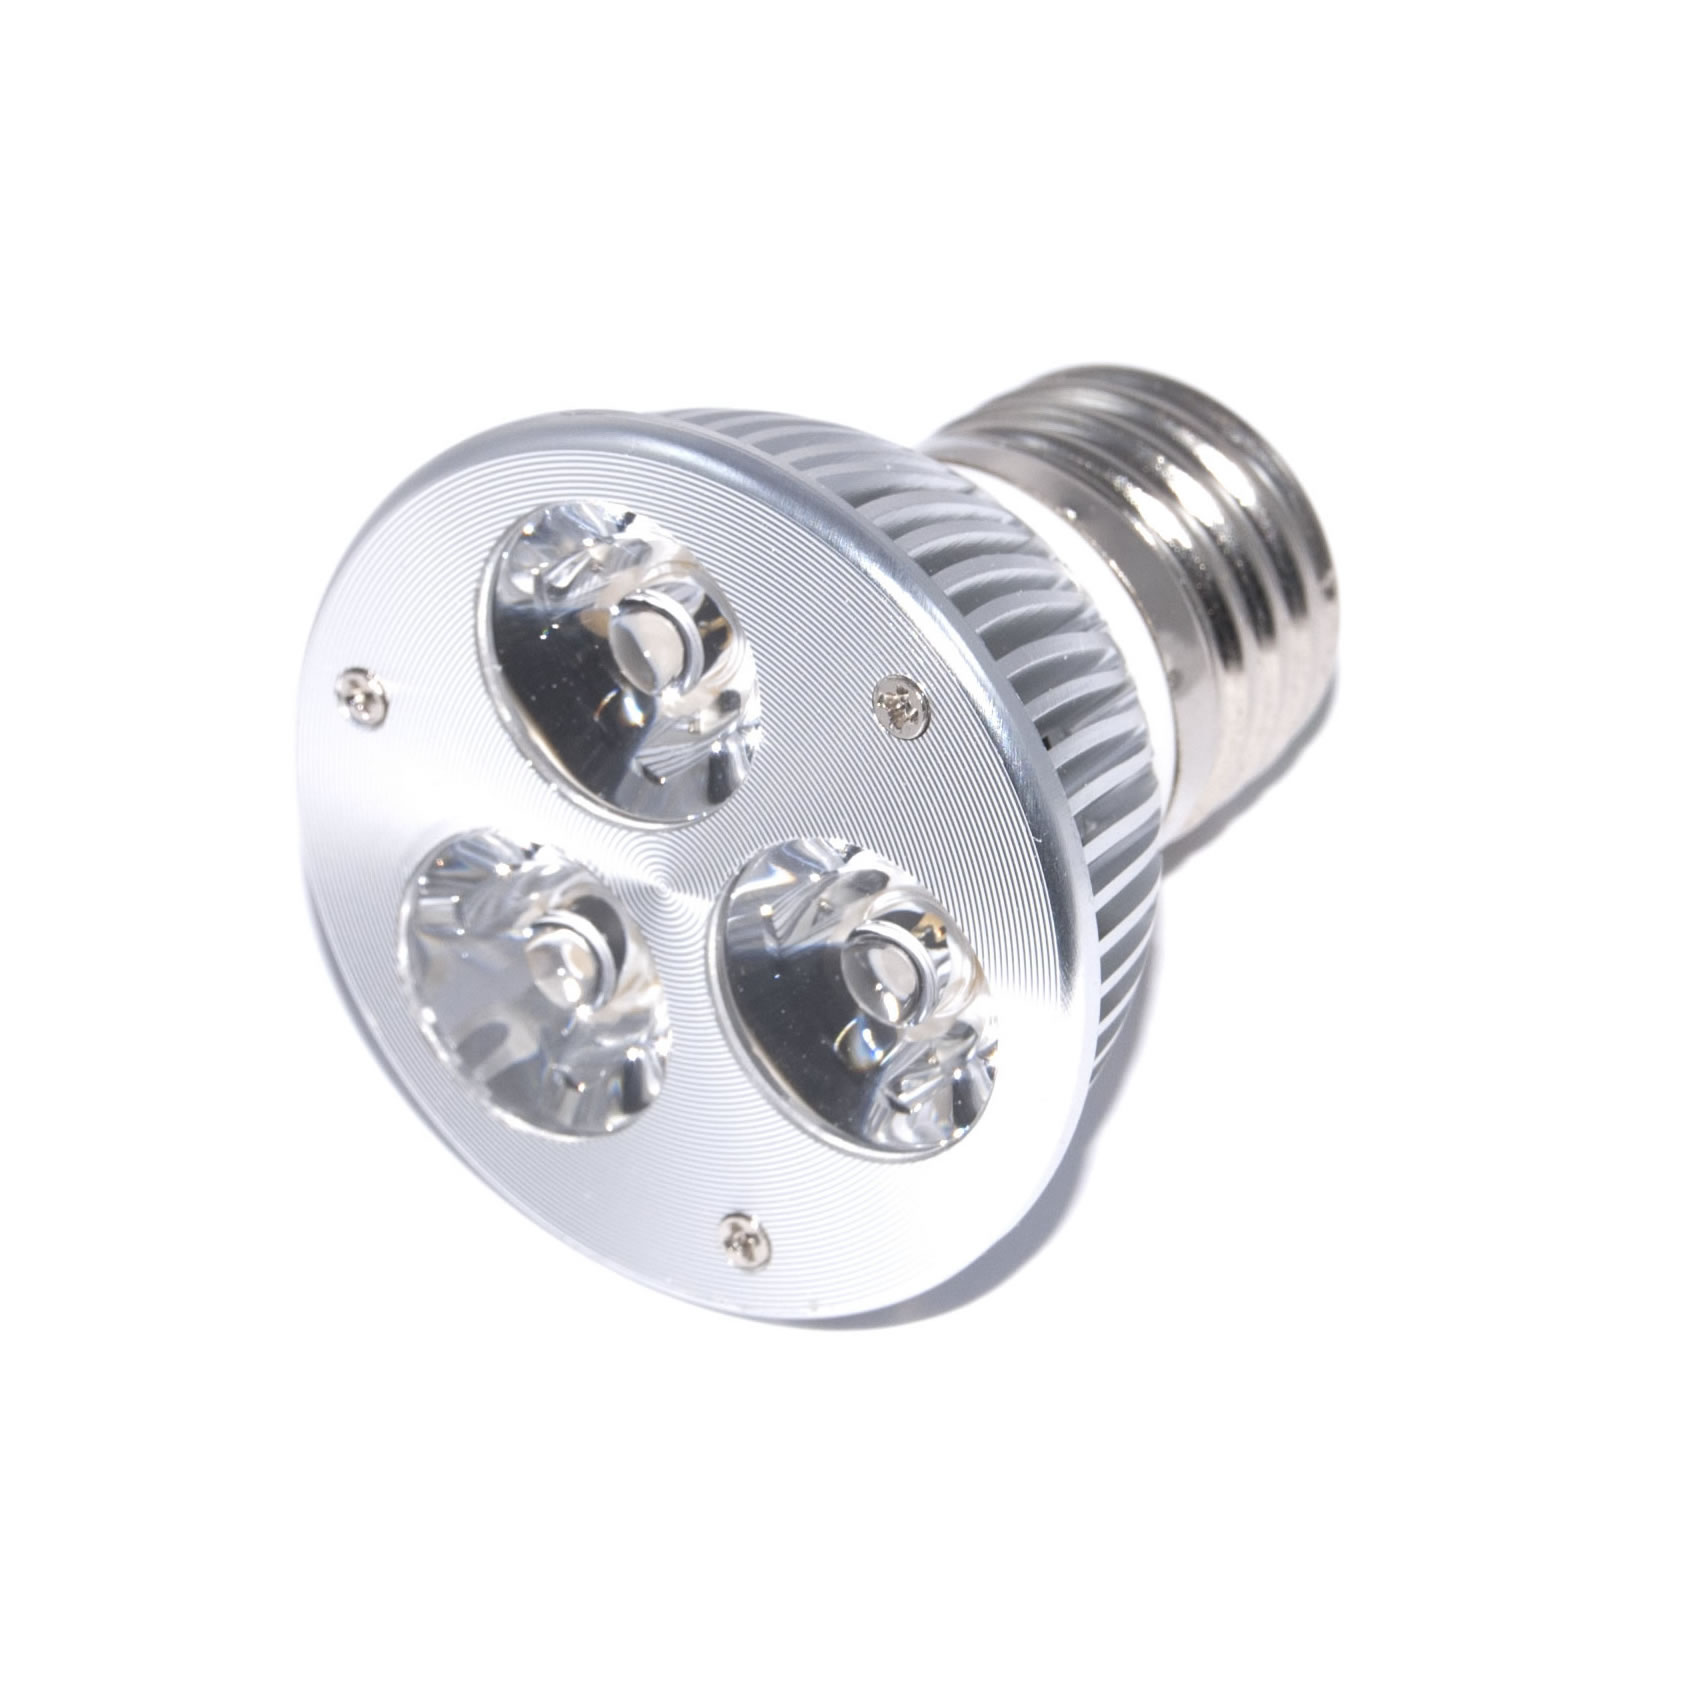 E27 power led lampen powerled verlichting voorradig parisarafo Images